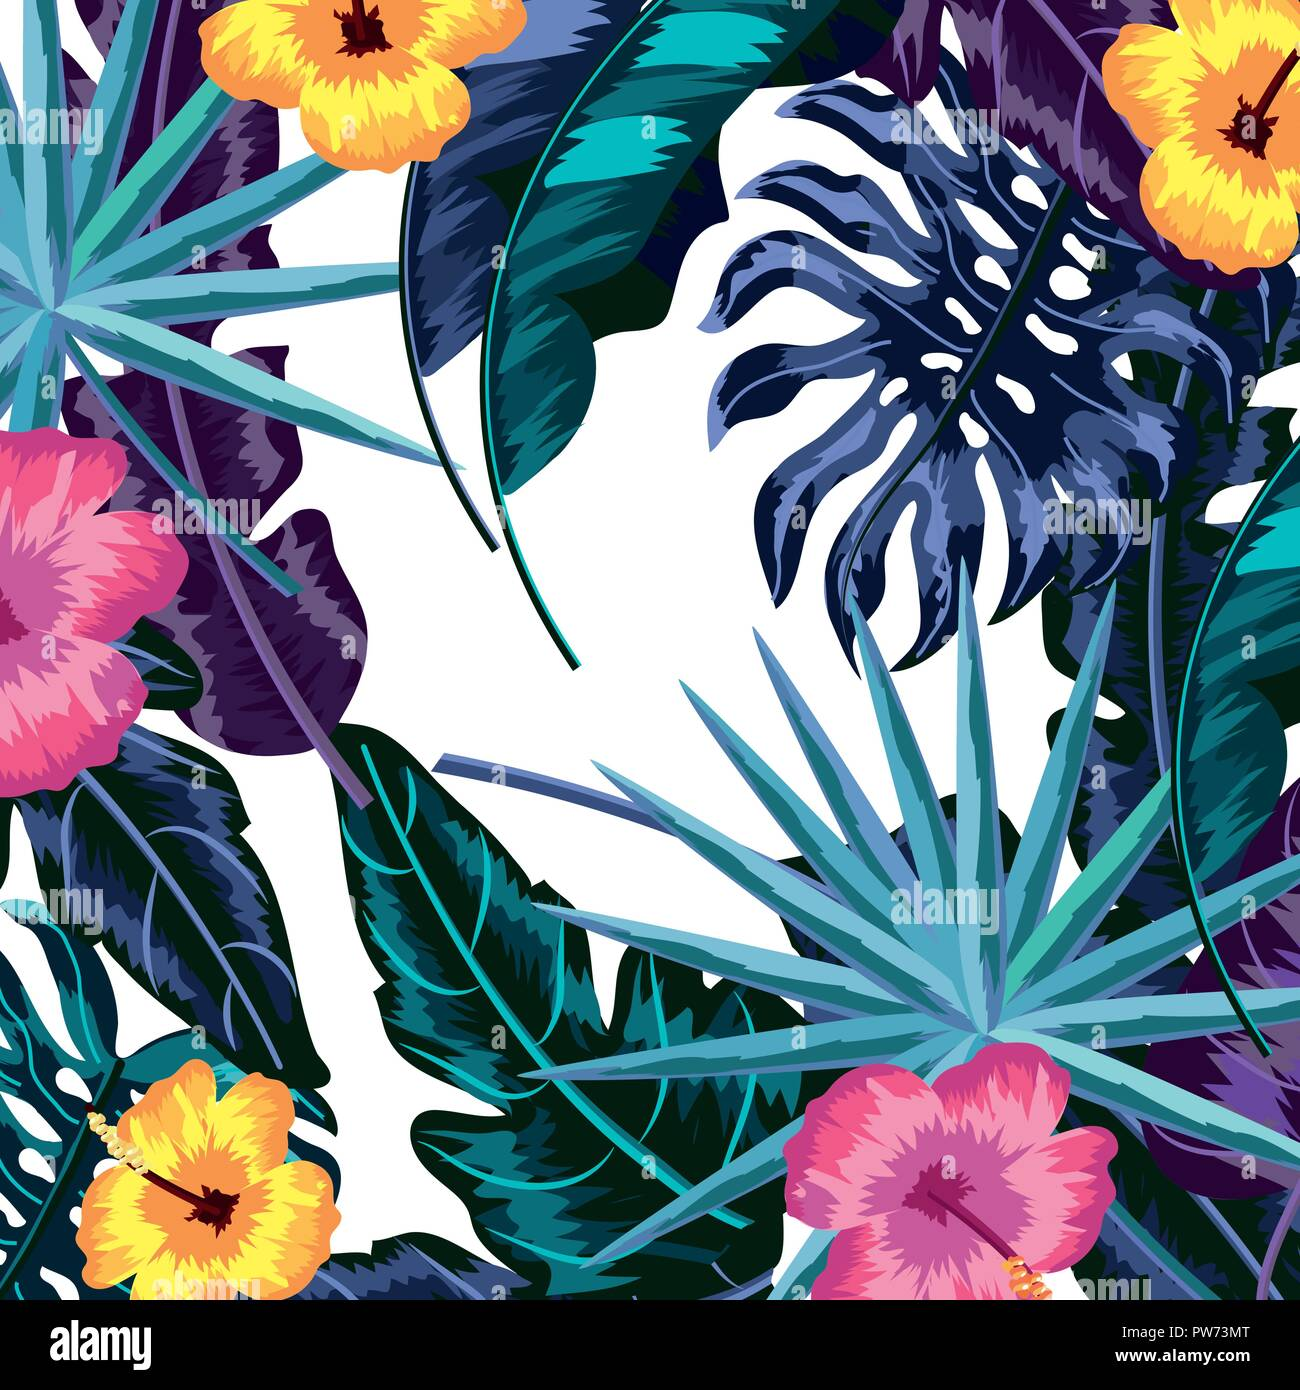 Tropical Leaves And Flowers Background Stock Vector Image Art Alamy Watercolor tropical leaf and flowers for wedding invitation card purpose. https www alamy com tropical leaves and flowers background image222047416 html